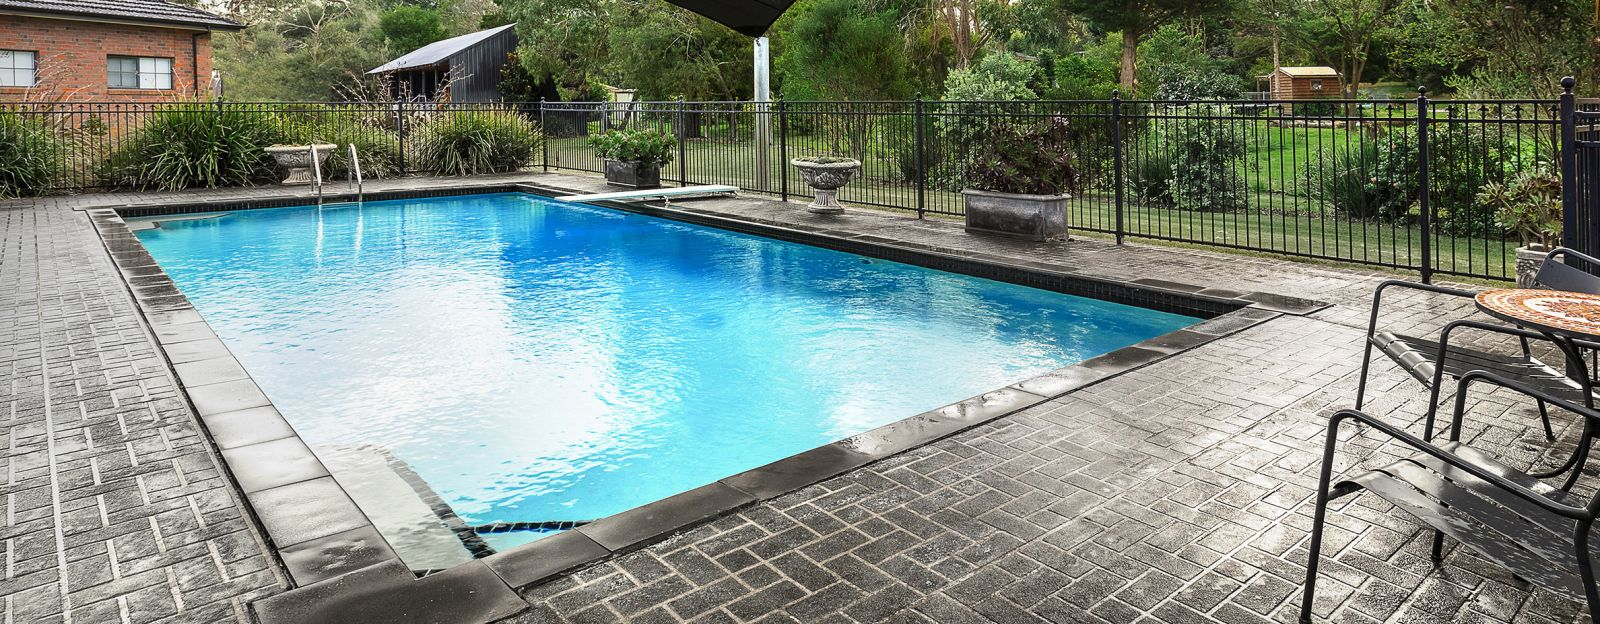 inground pool designs Melbourne, Victoria, Australia